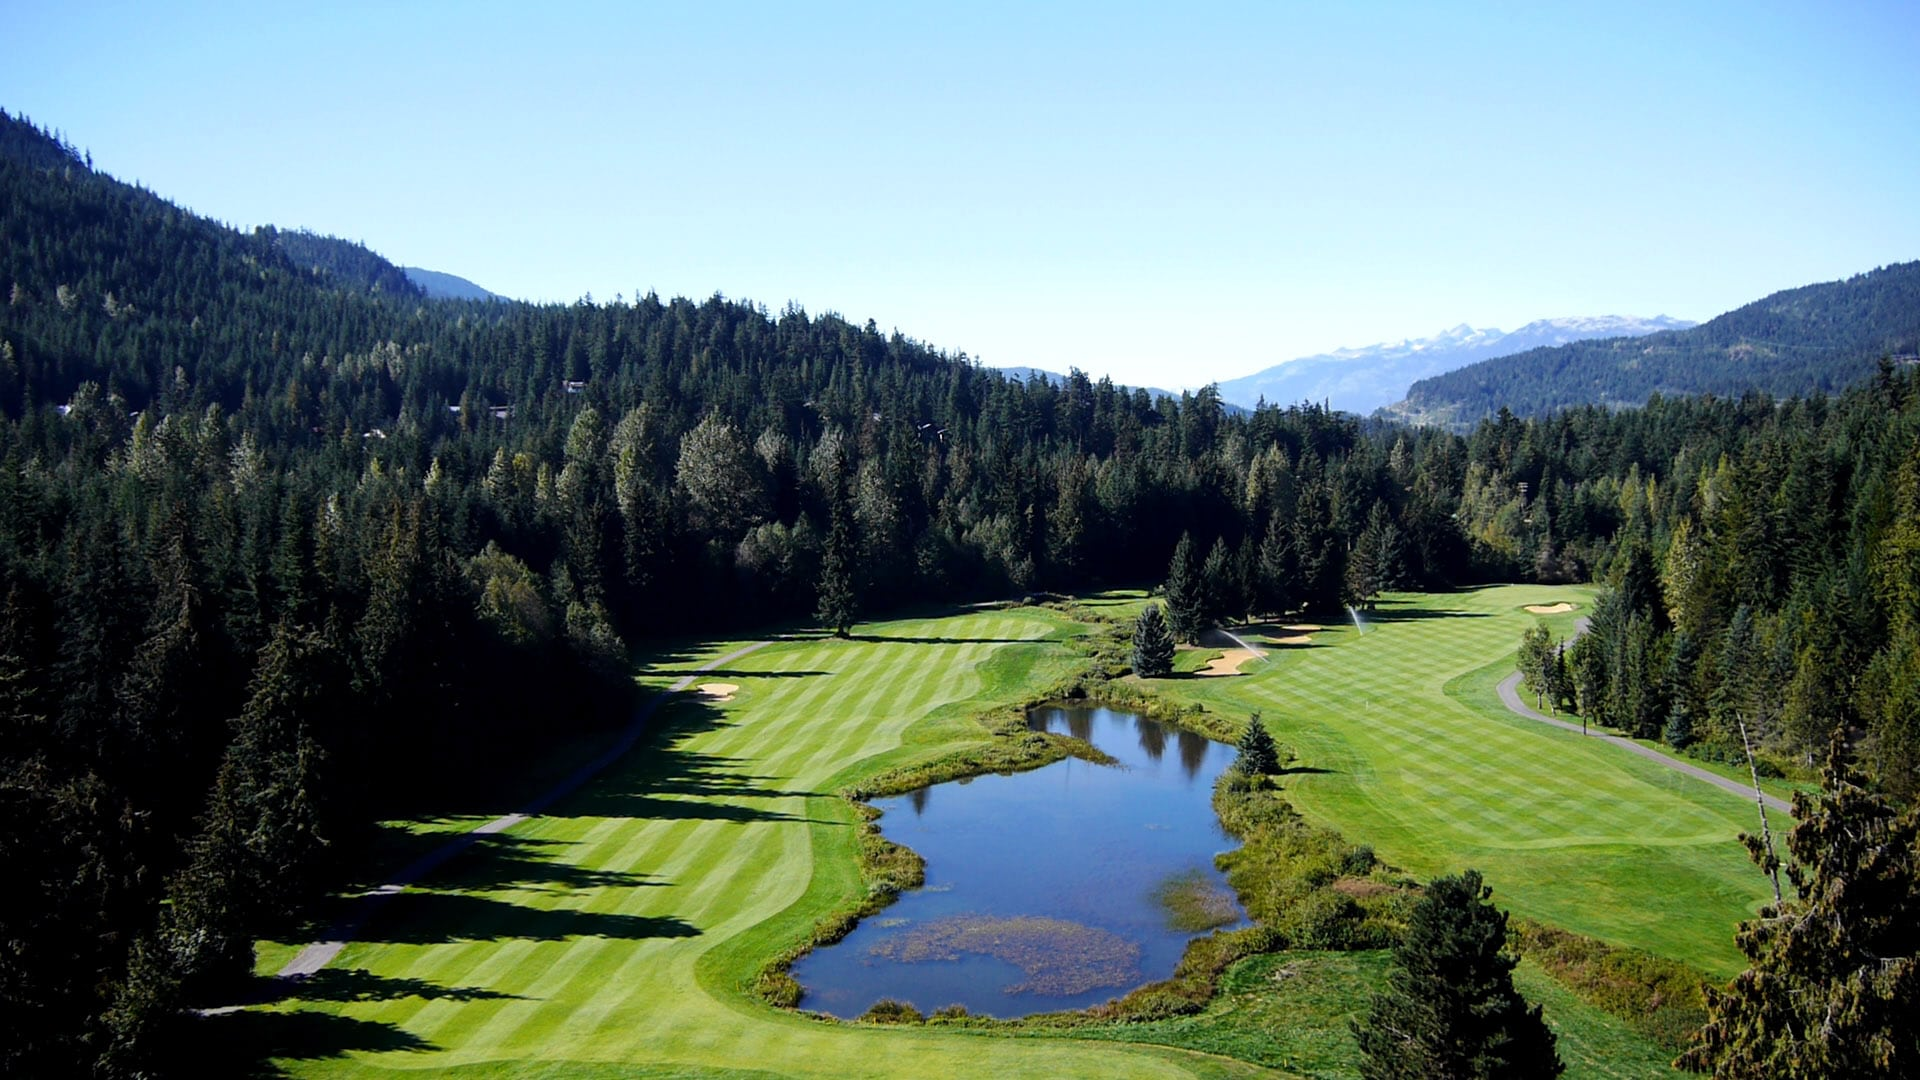 Decorative image of Whistler golf course, surrounded by mountains